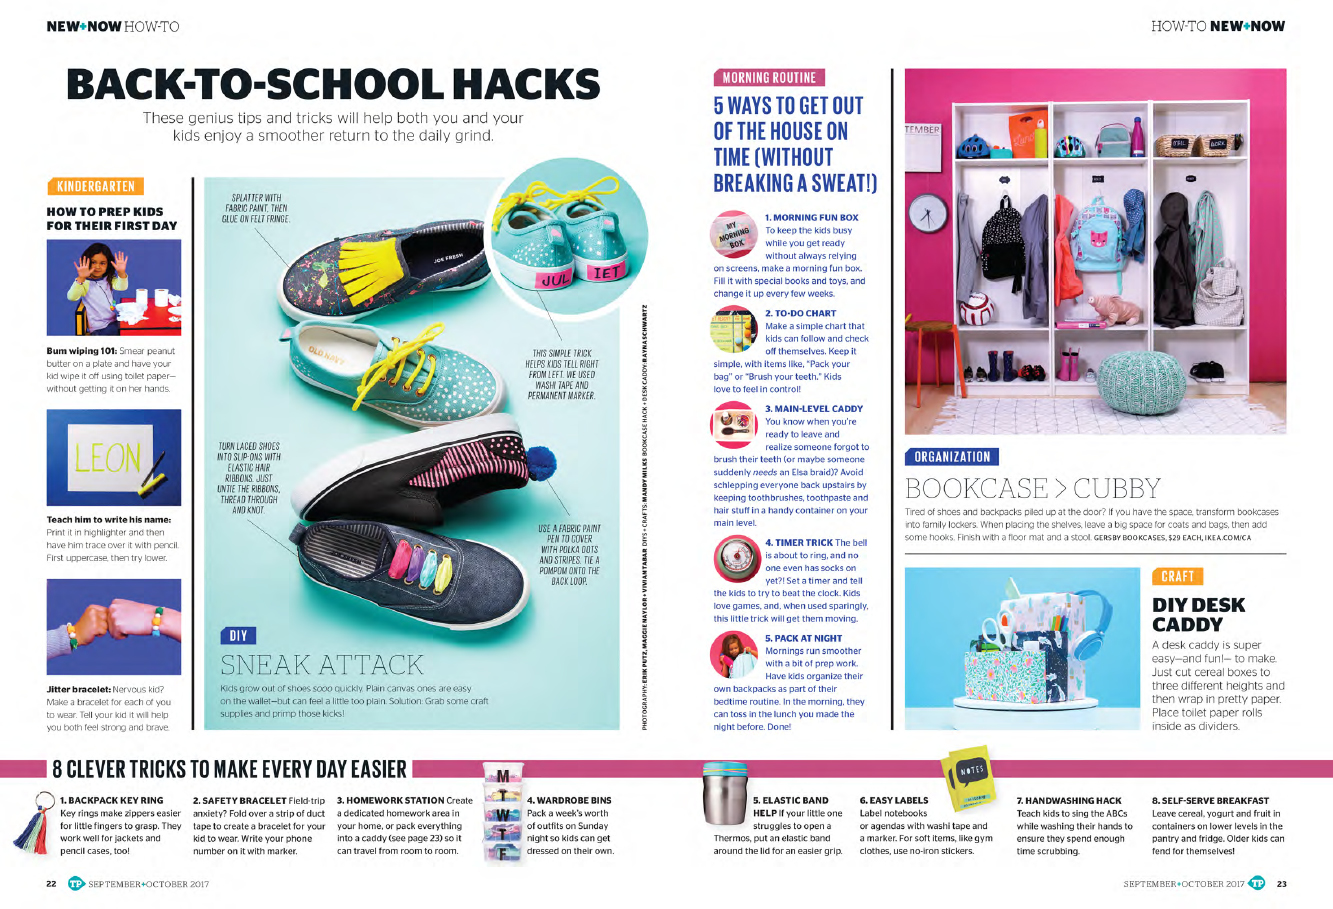 Back-to-school hacks